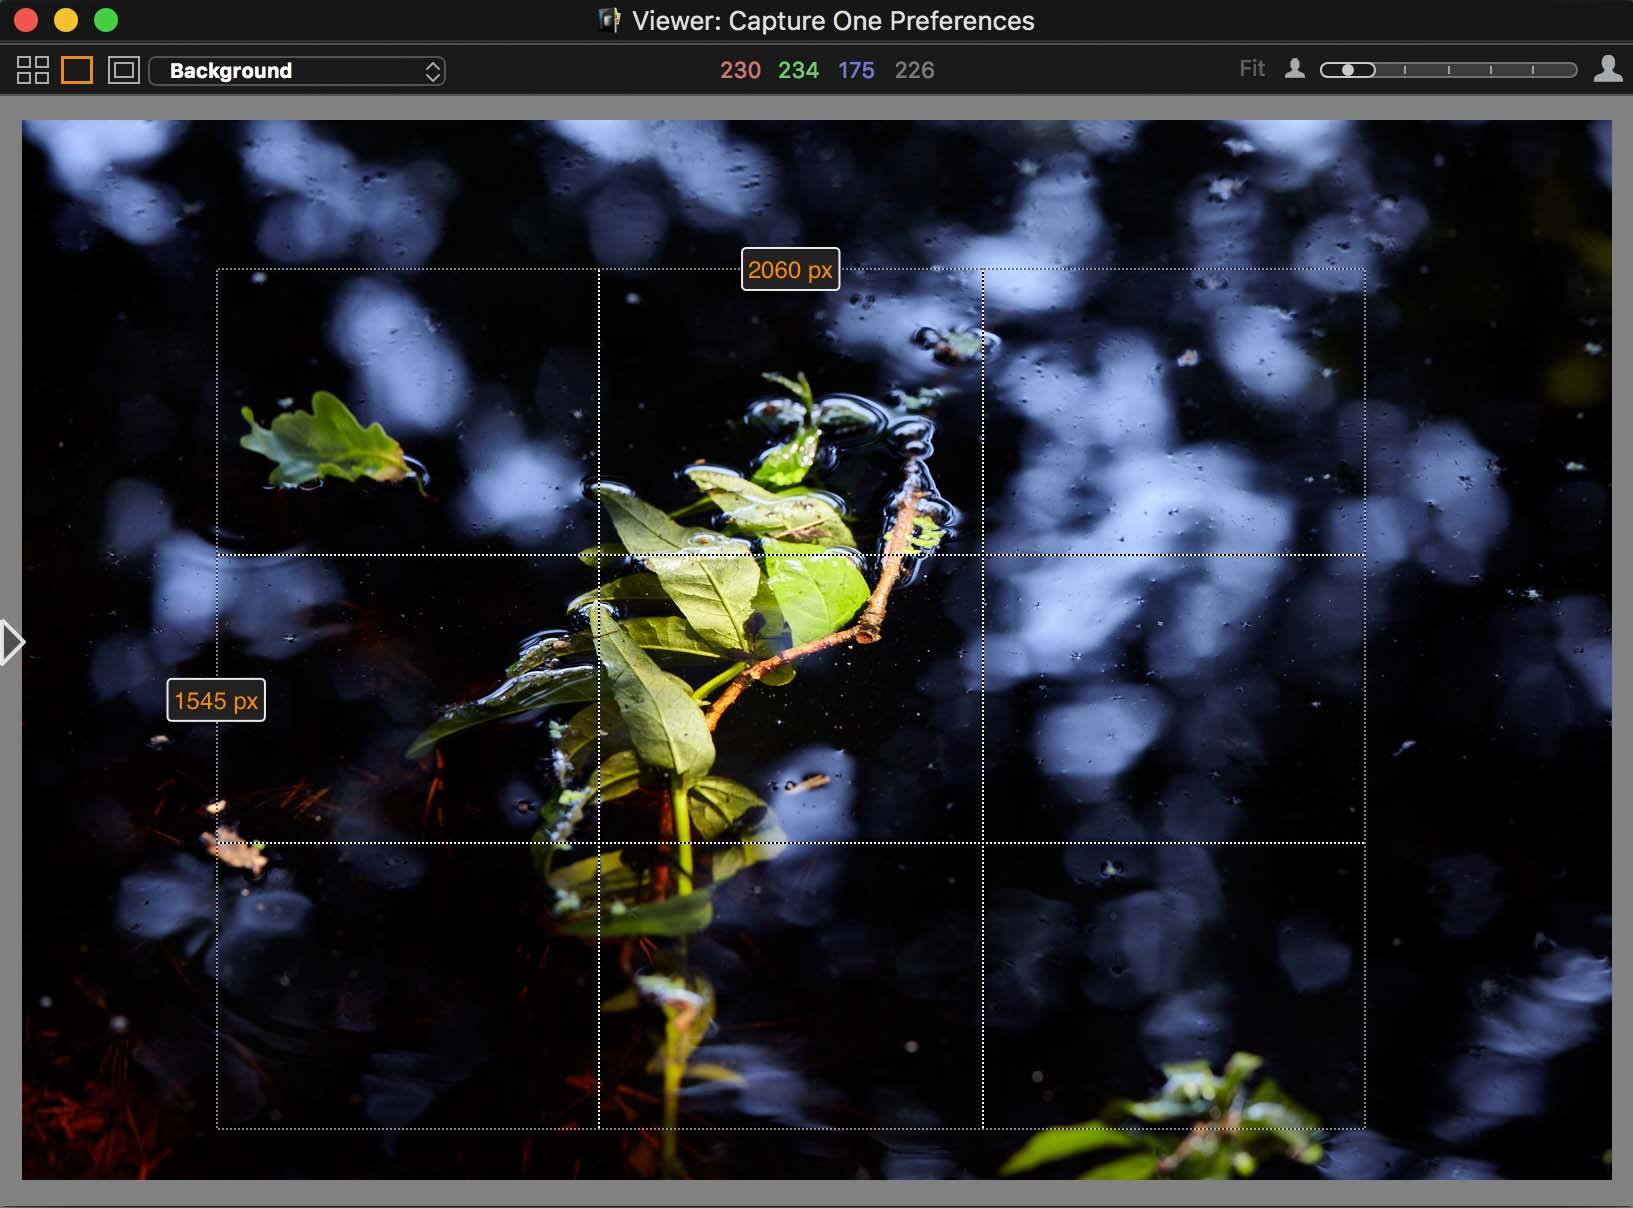 capture one pro 10, viewer, frame during crop